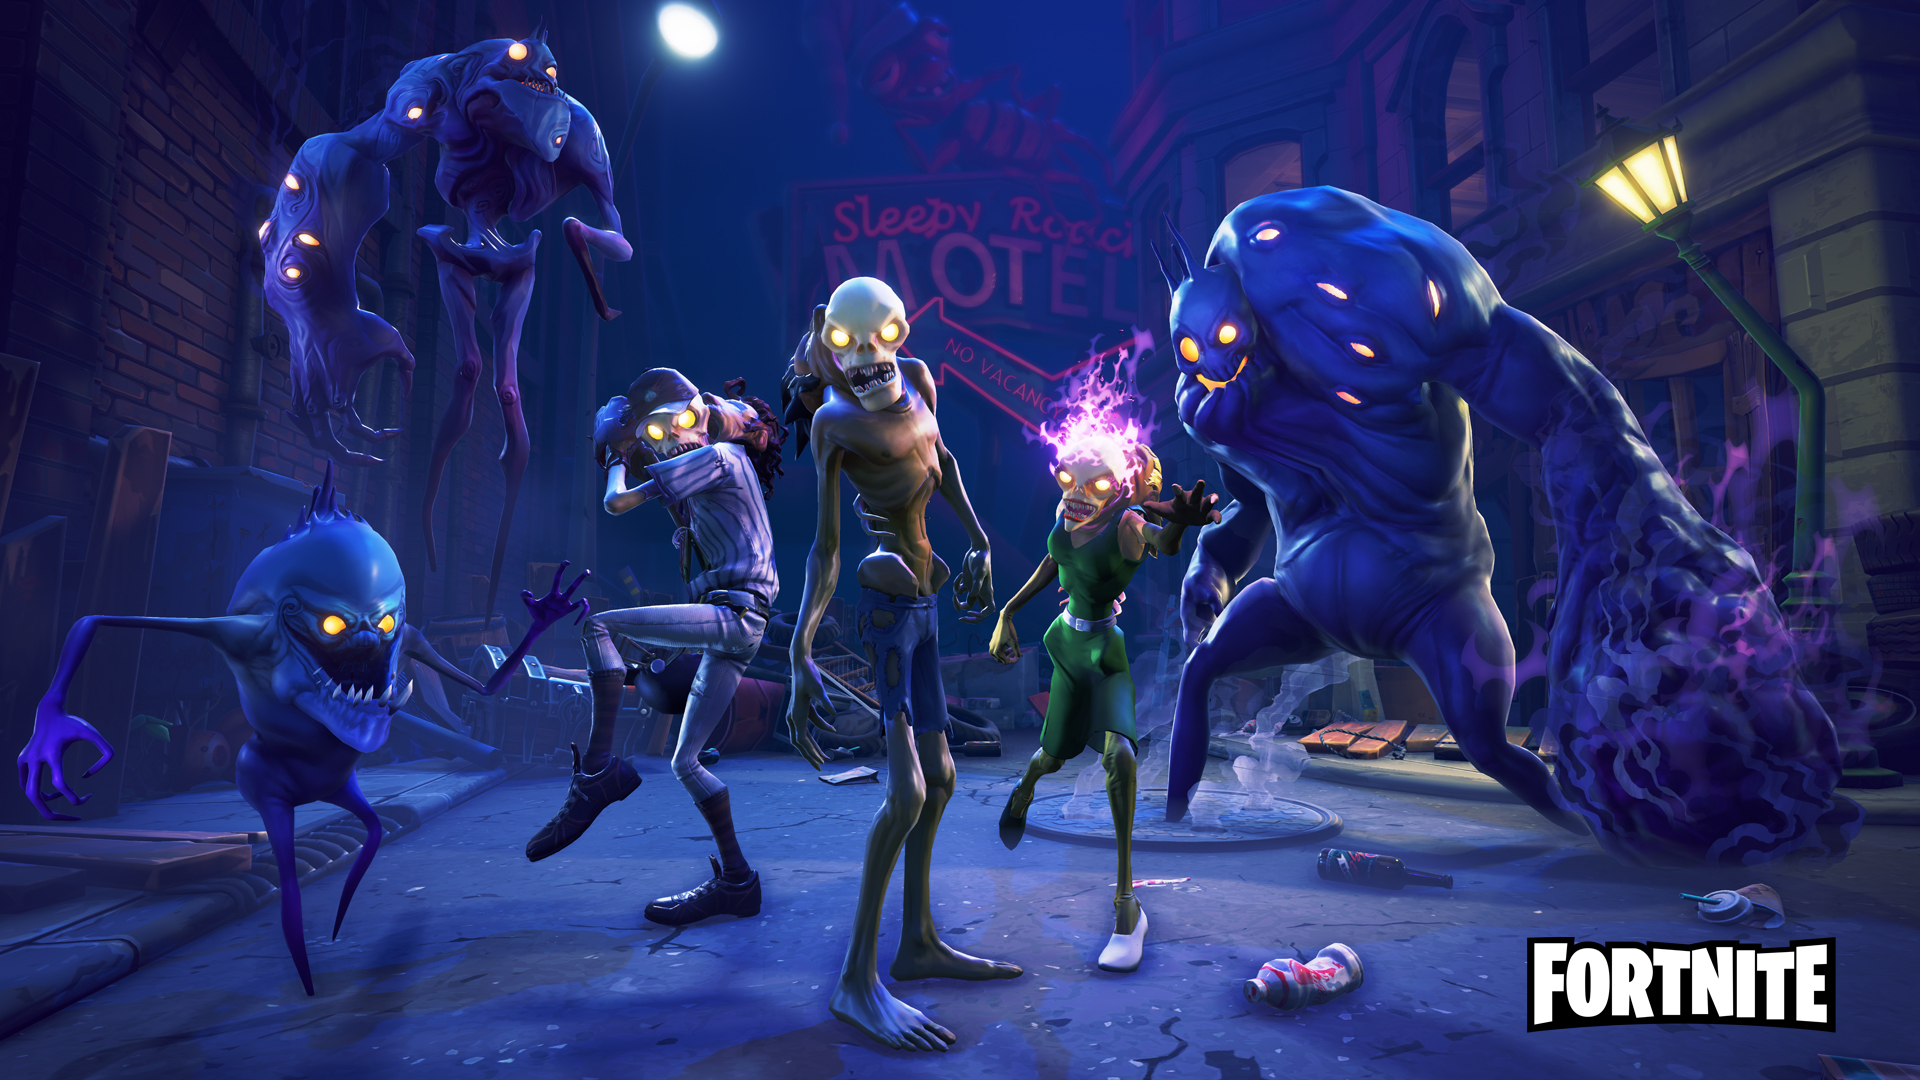 Fortnite Hd Wallpaper Background Image 1920x1080 Id 540336 Wallpaper Abyss